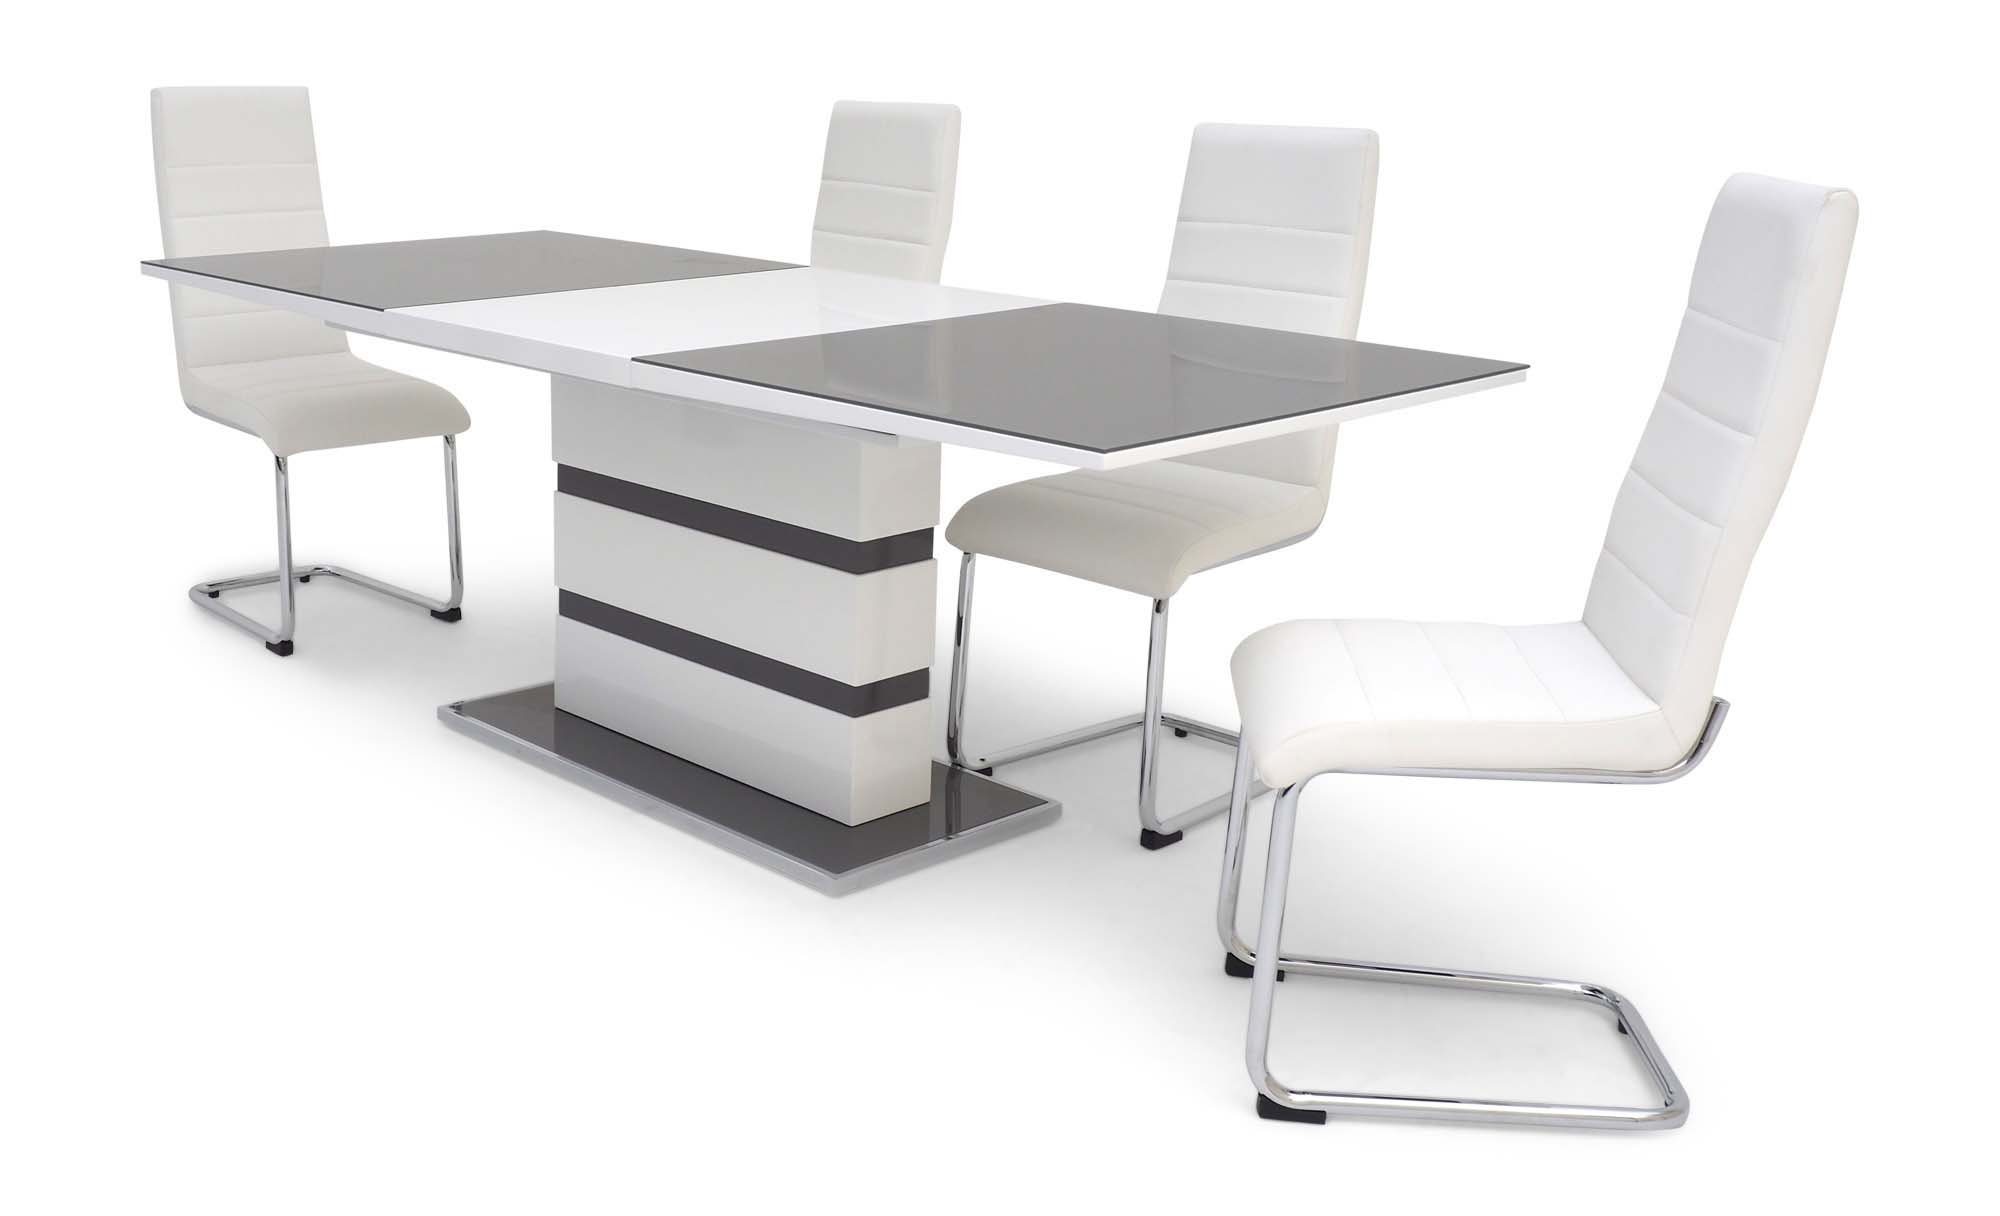 https://www.firstfurniture.co.uk/pub/media/catalog/product/a/r/armano_table_hugo_chair_white_open_1_side.jpg